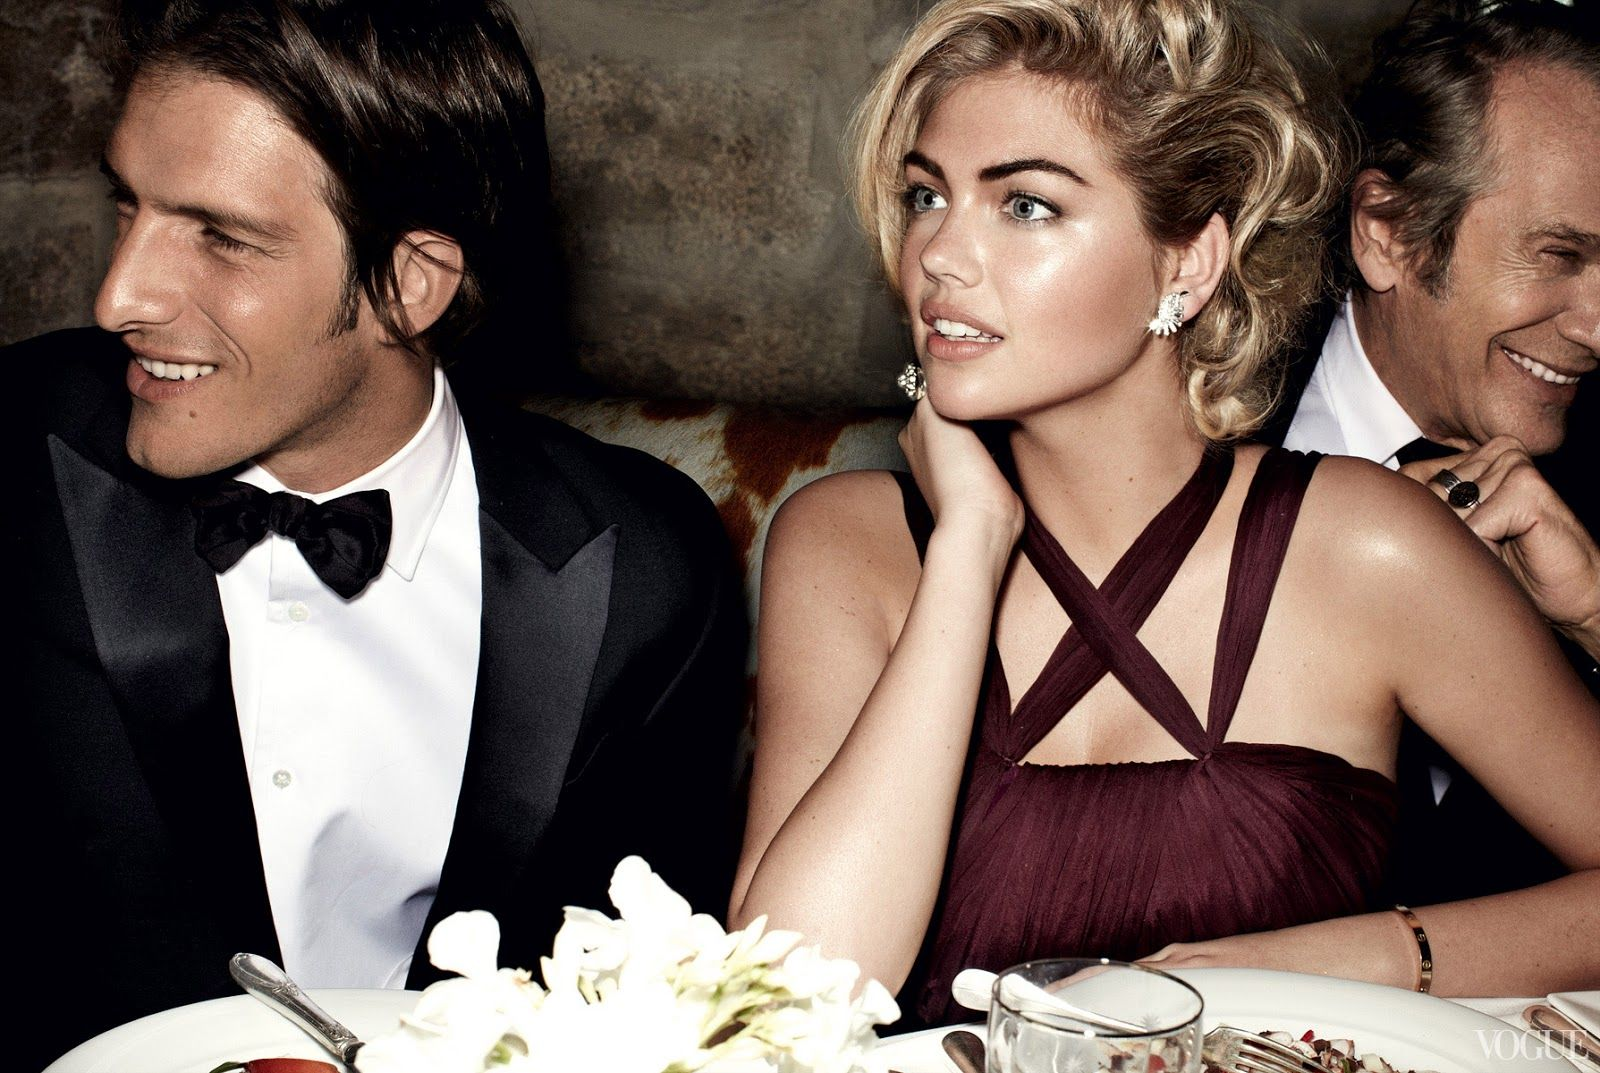 the kate upton effect: kate upton by mario testino for us vogue june 2013 | visual optimism; fashion editorials, shows, campaigns & more!